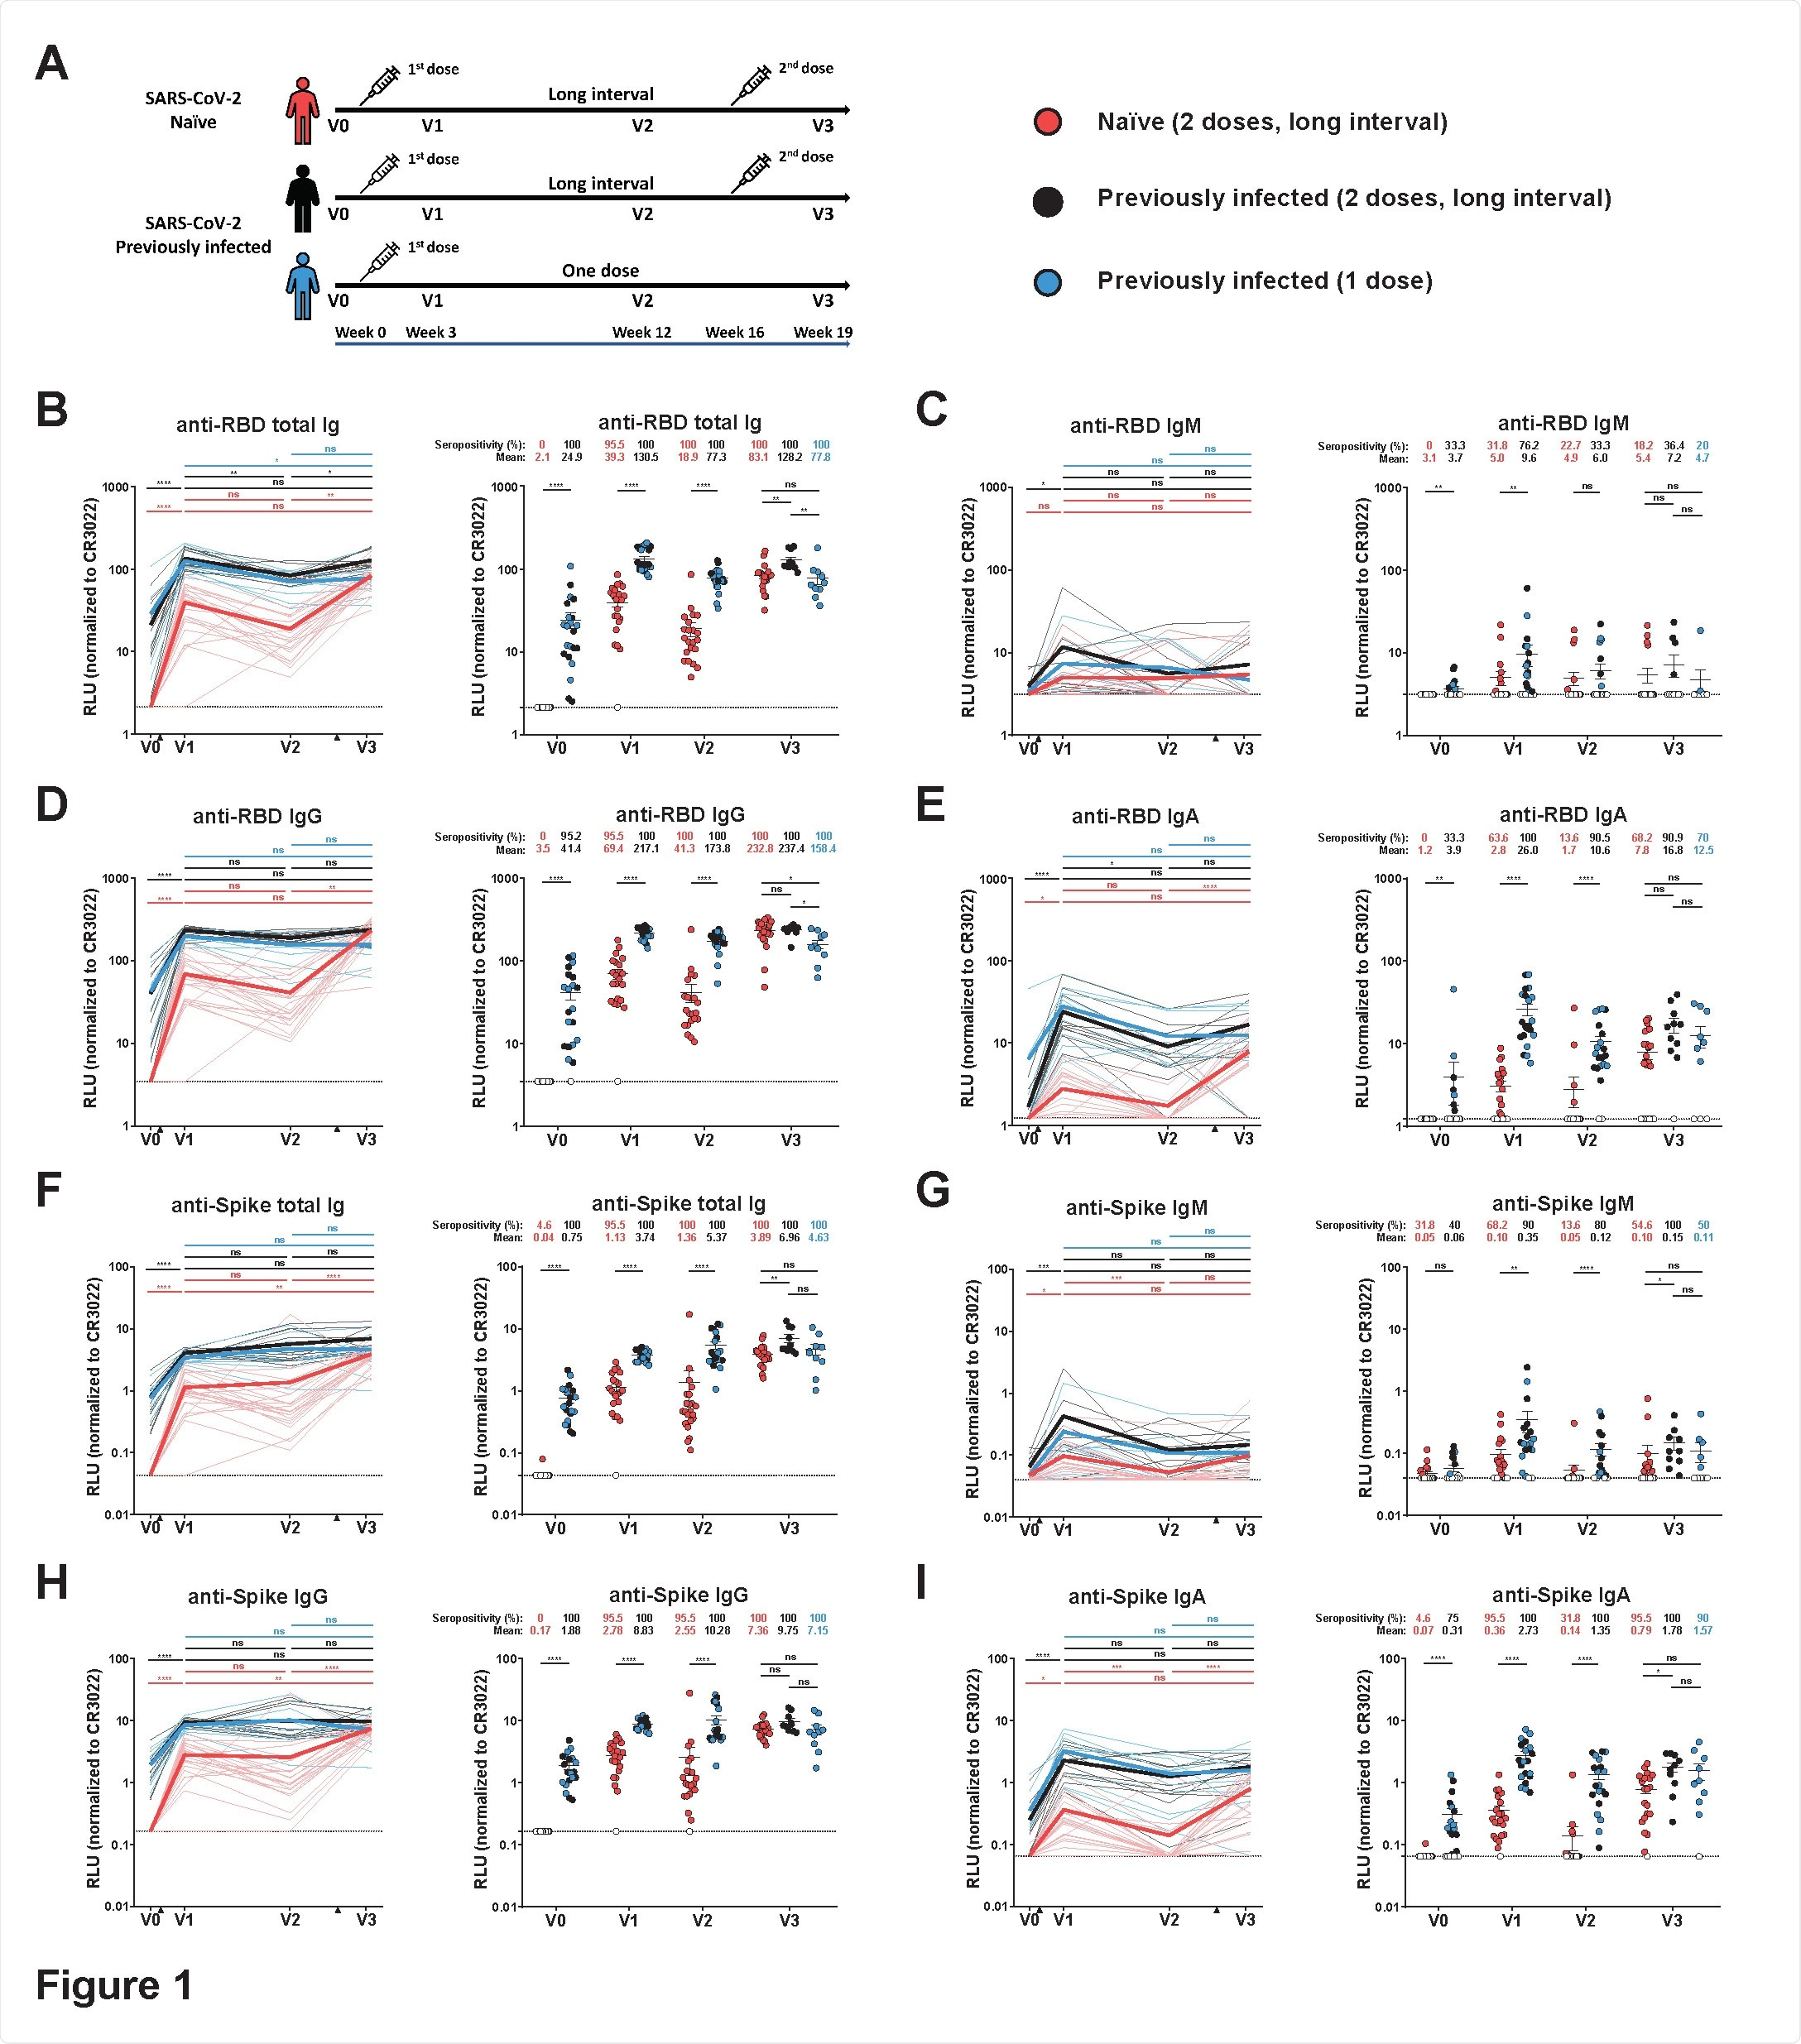 Elicitation of RBD- and Spike-specific antibodies in SARS-CoV-2 naïve and previously-infected individuals. (A) SARS-CoV-2 vaccine cohort design. (B-E) Indirect ELISA was performed by incubating plasma samples from naïve and PI donors collected at V0, V1, V2 and V3 with recombinant SARS-CoV-2 RBD protein. Anti-RBD Ab binding was detected using HRP-conjugated (B) anti human IgM+IgG+IgA (C) anti-human IgM, (D) anti-human IgG, or (E) anti-human IgA. Relative light unit (RLU) values obtained with BSA (negative control) were subtracted and further normalized to the signal obtained with the anti-RBD CR3022 mAb present in each plate. (F-I) Cell based ELISA was performed by incubating plasma samples from naïve and PI donors collected at V0, V1, V2 and V3 with HOS cells expressing full-length SARS-CoV-2 S. Anti-S Ab binding was detected using HRP-conjugated (F) anti-human IgM+IgG+IgA (G) anti-human IgM, (H) anti human IgG, or (I) anti-human IgA. RLU values obtained with parental HOS (negative control) were subtracted and further normalized to the signal obtained with the CR3022 mAb present in each plate. Naïve and PI donors with a long interval between the two doses are represented by red and black points respectively and PI donors who received just one dose by blue points. (Left panels) Each curve represents the normalized RLUs obtained with the plasma of one donor at every time point. Mean of each group is represented by a bold line. The time of vaccine dose injections is indicated by black triangles. (Right panels) Plasma samples were grouped in different time points (V0, V1, V2 and V3). Undetectable measures are represented as white symbols, and limits of detection are plotted. Error bars indicate means ± SEM. (* P < 0.05; ** P < 0.01; *** P < 0.001; **** P < 0.0001; ns, non-significant).1